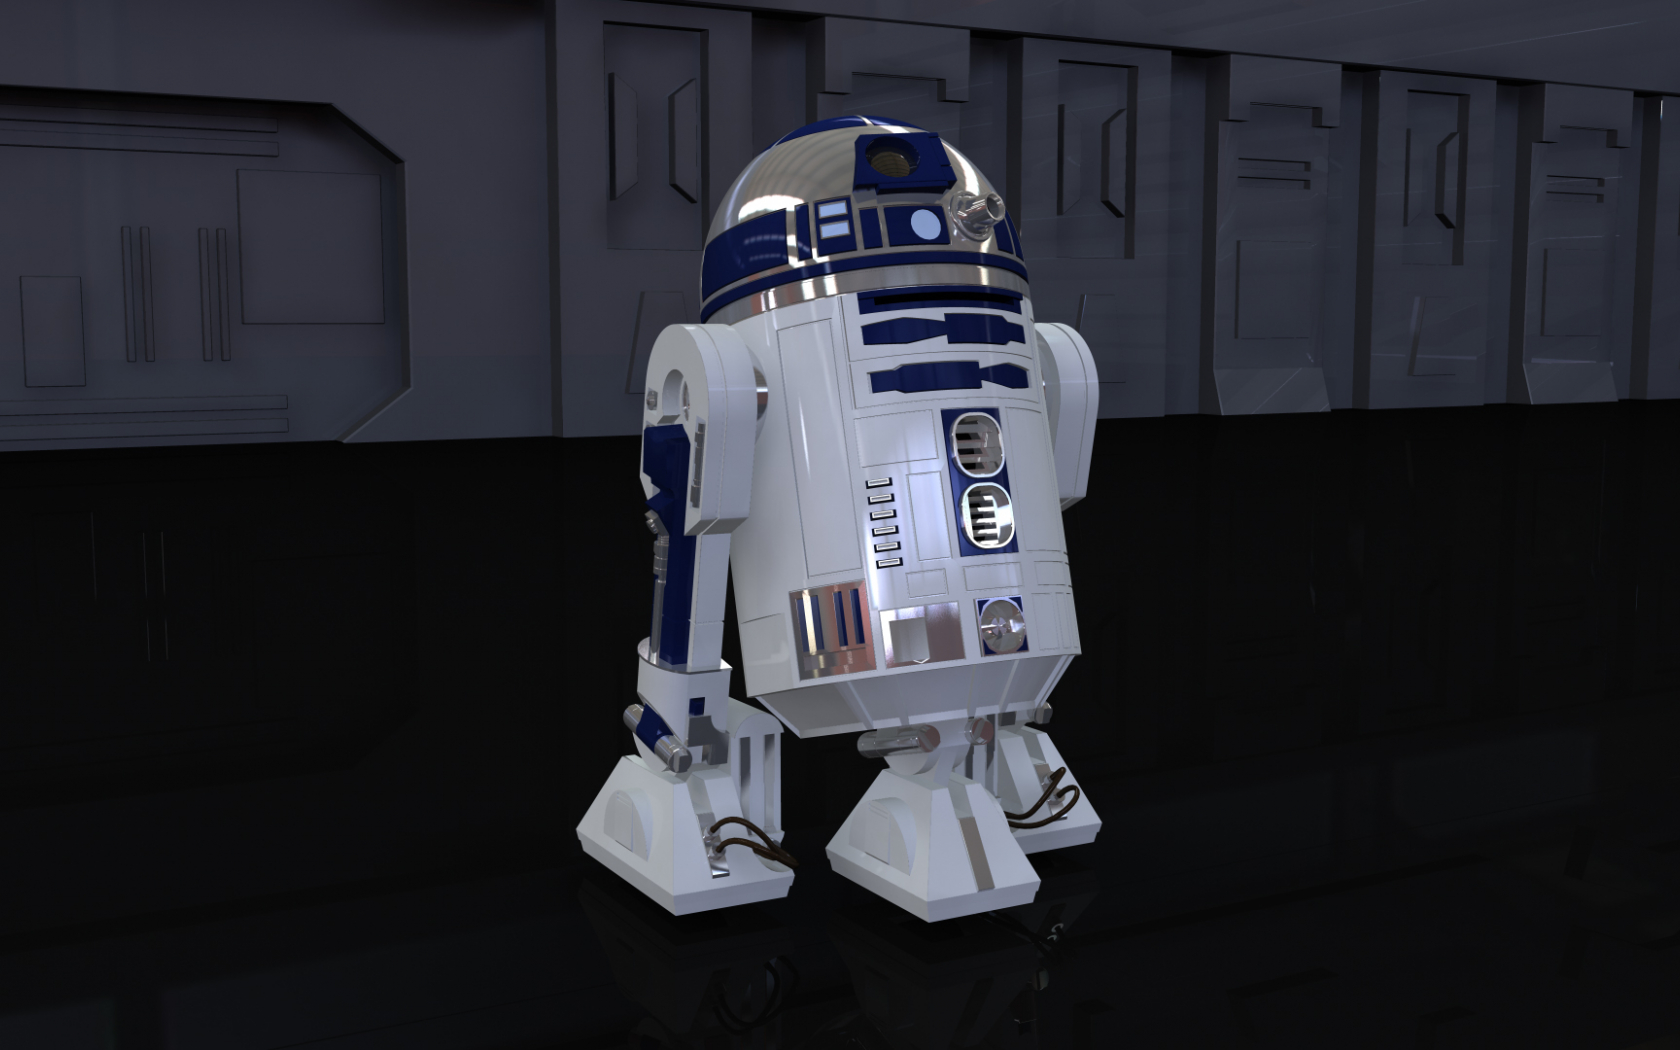 Free Download New R2d2 Background View 875508 Wallpapers Risewlp 1920x1080 For Your Desktop Mobile Tablet Explore 76 R2d2 Wallpaper R2d2 Wallpaper Hd Star Wars R2d2 Wallpaper R2d2 Wallpaper Iphone 6